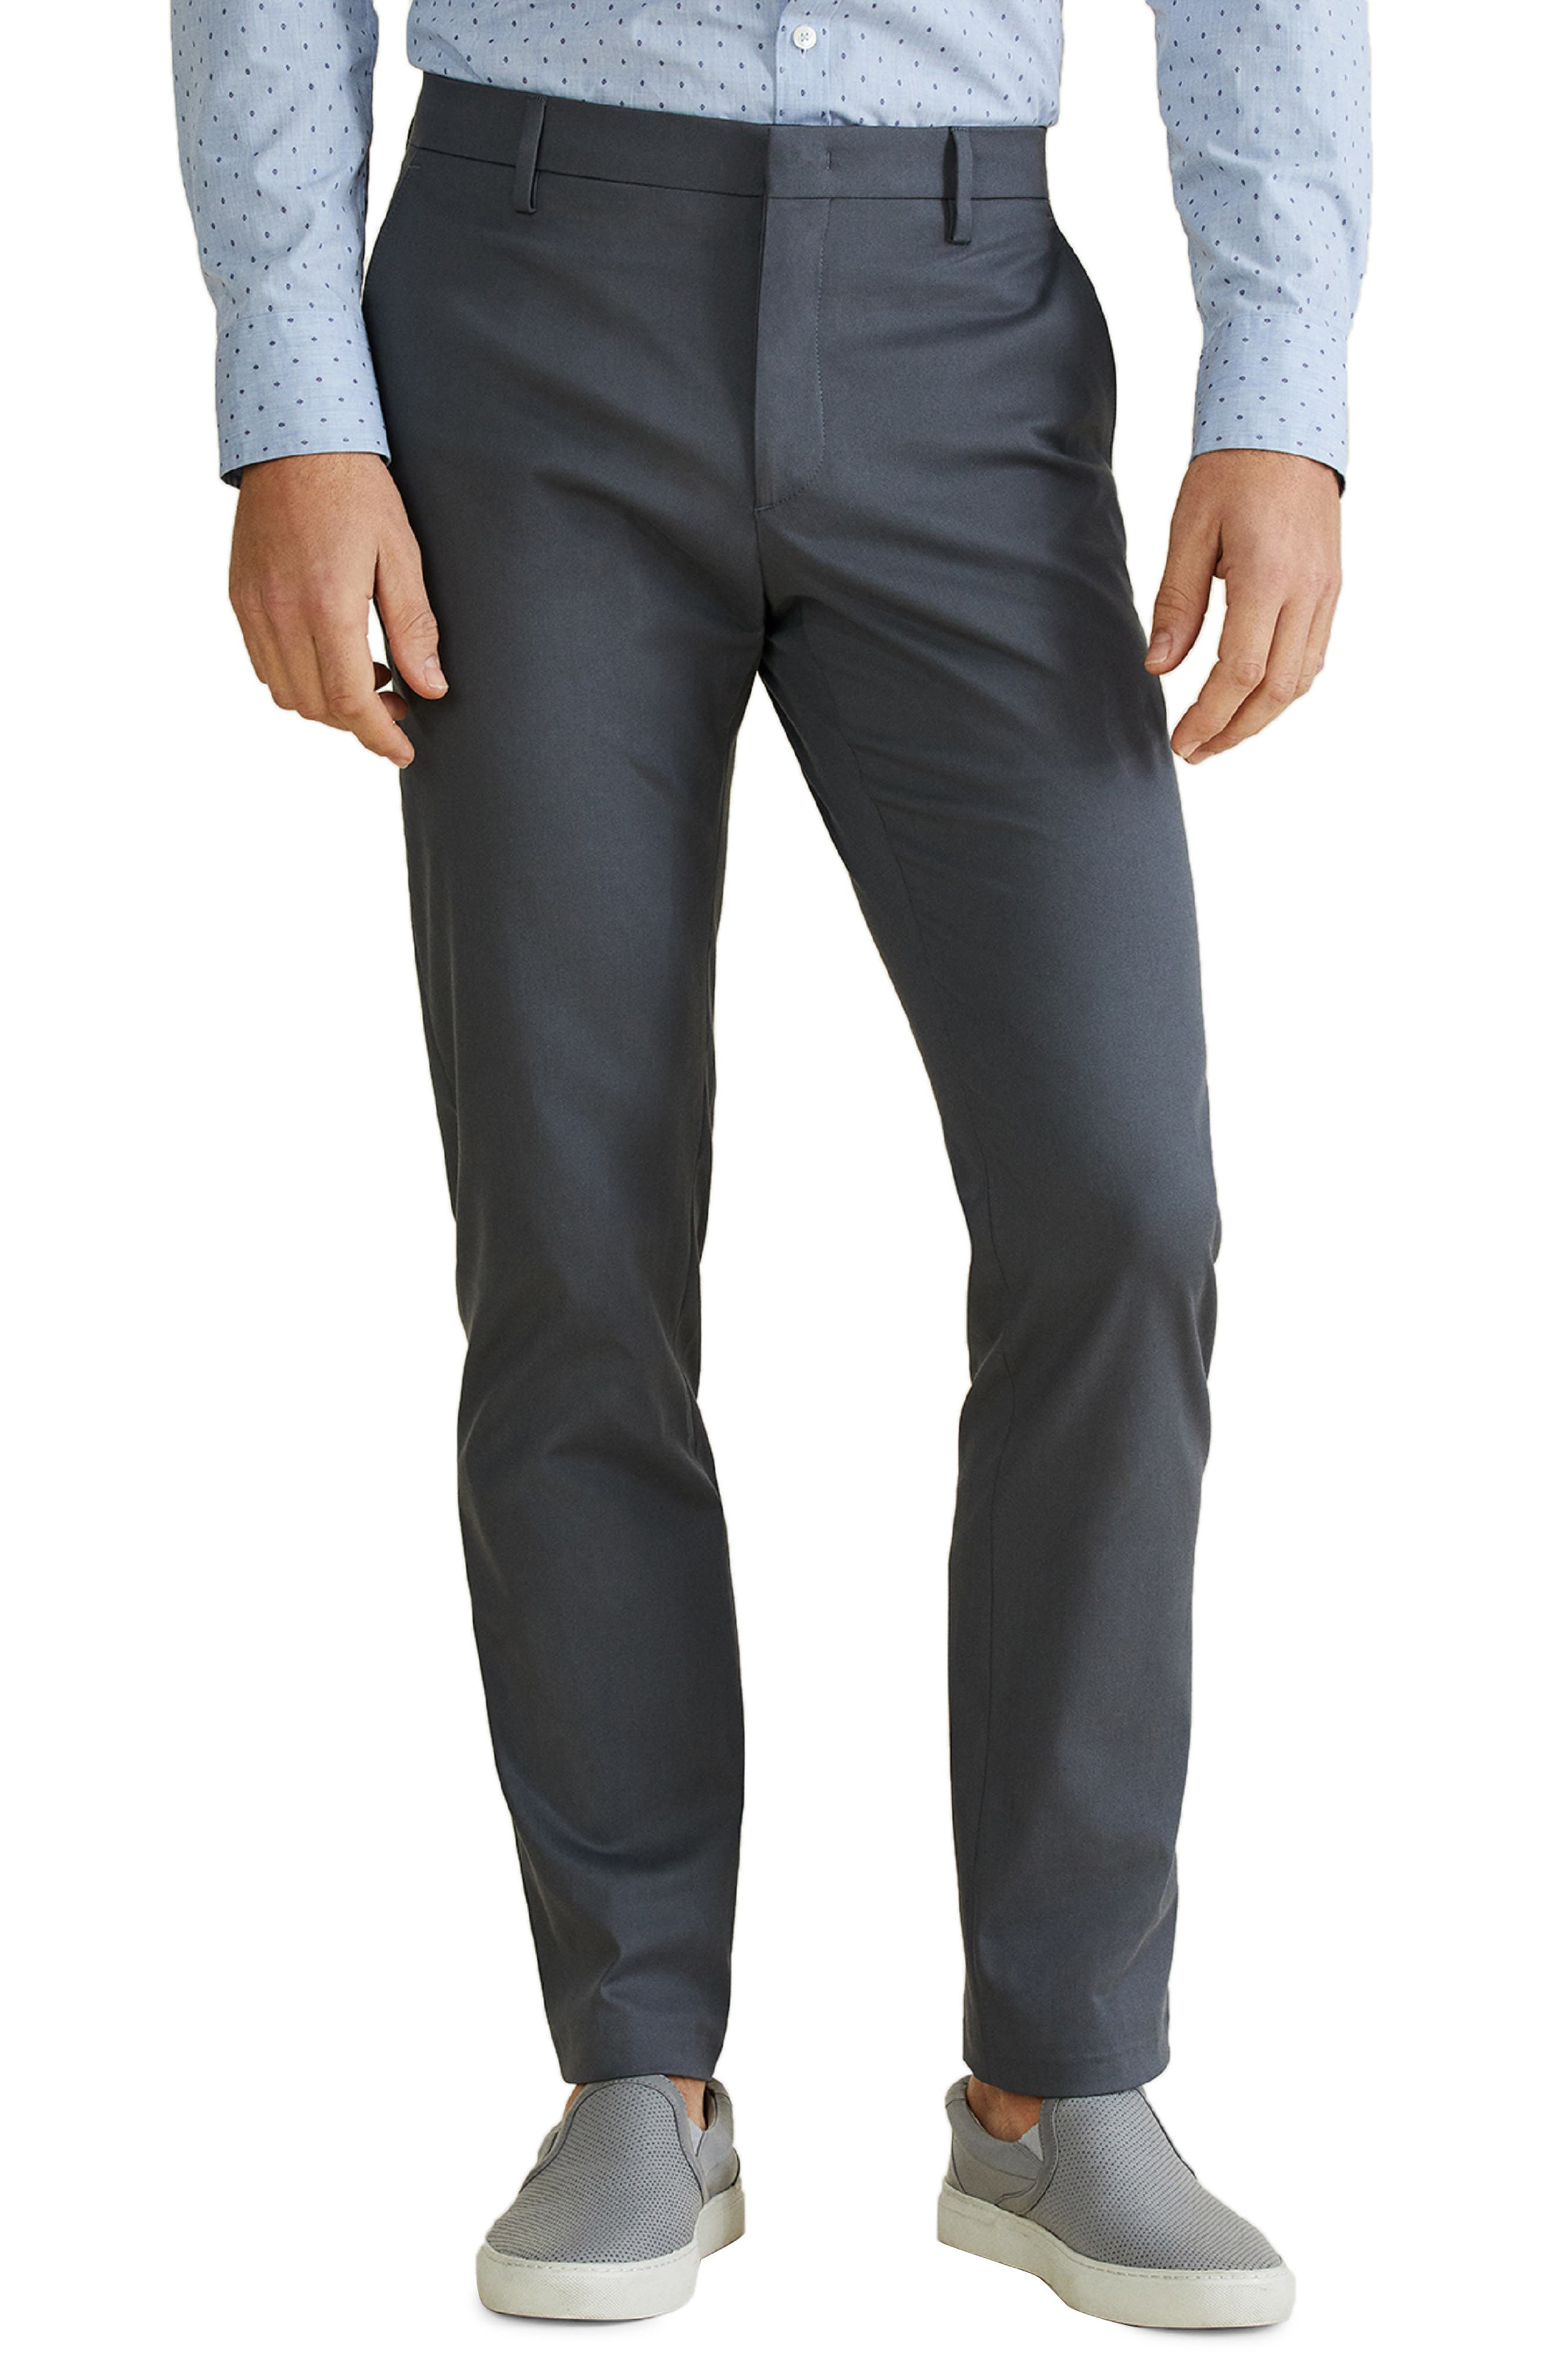 Image of Zachary Prell Adler Solid Pants